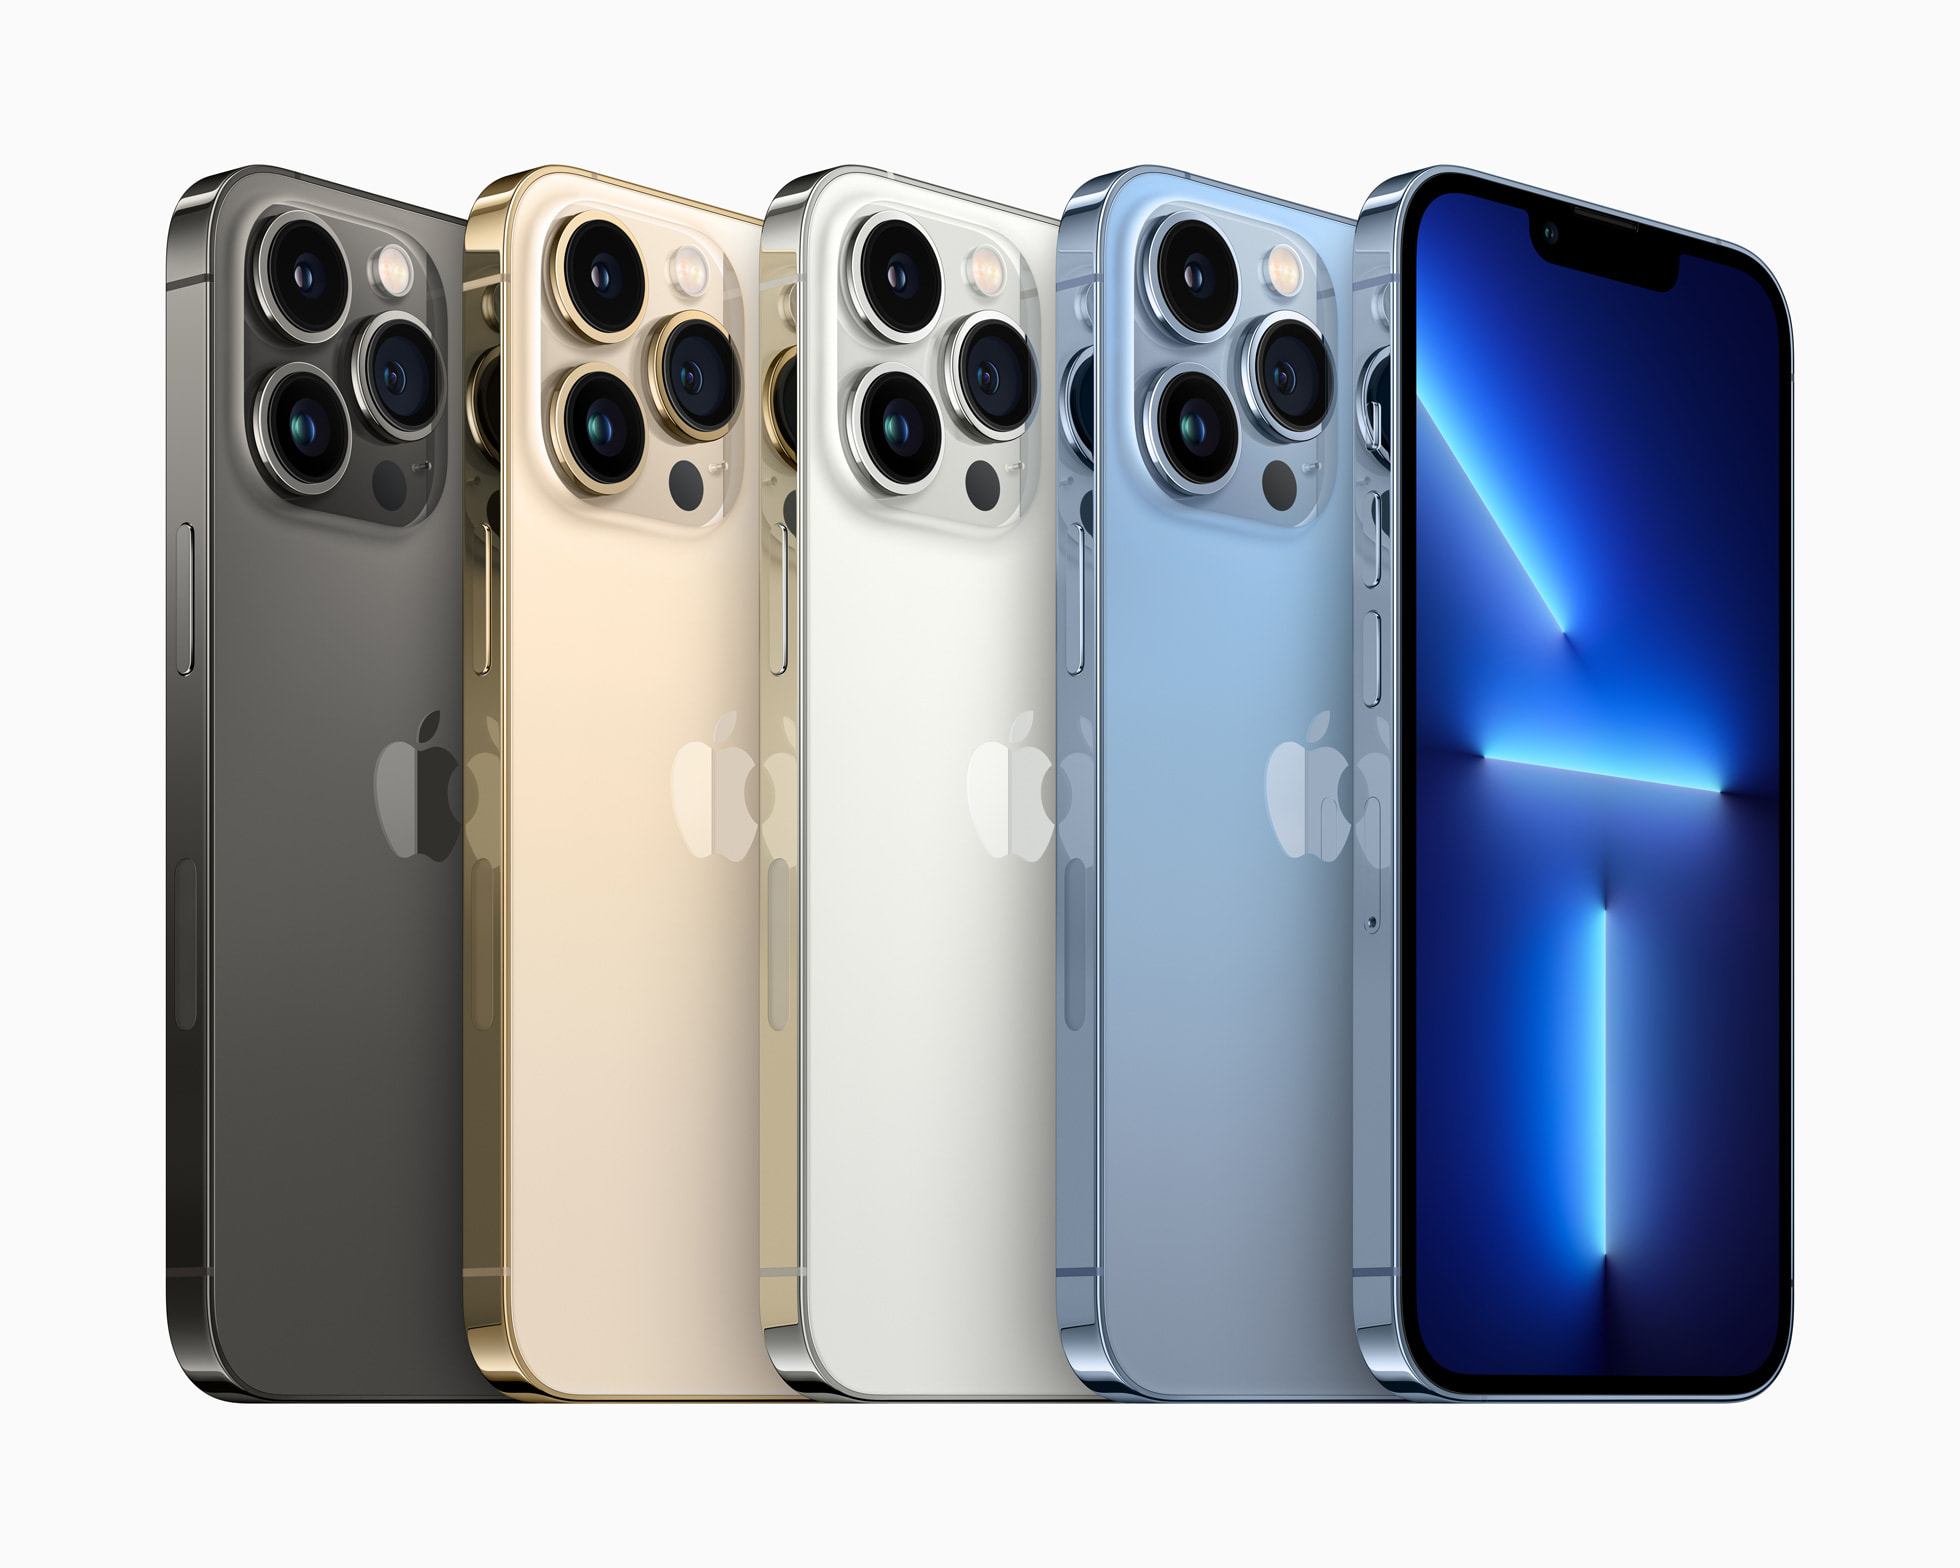 Apple iPhone 13 series: Release Date, Price & Specifications